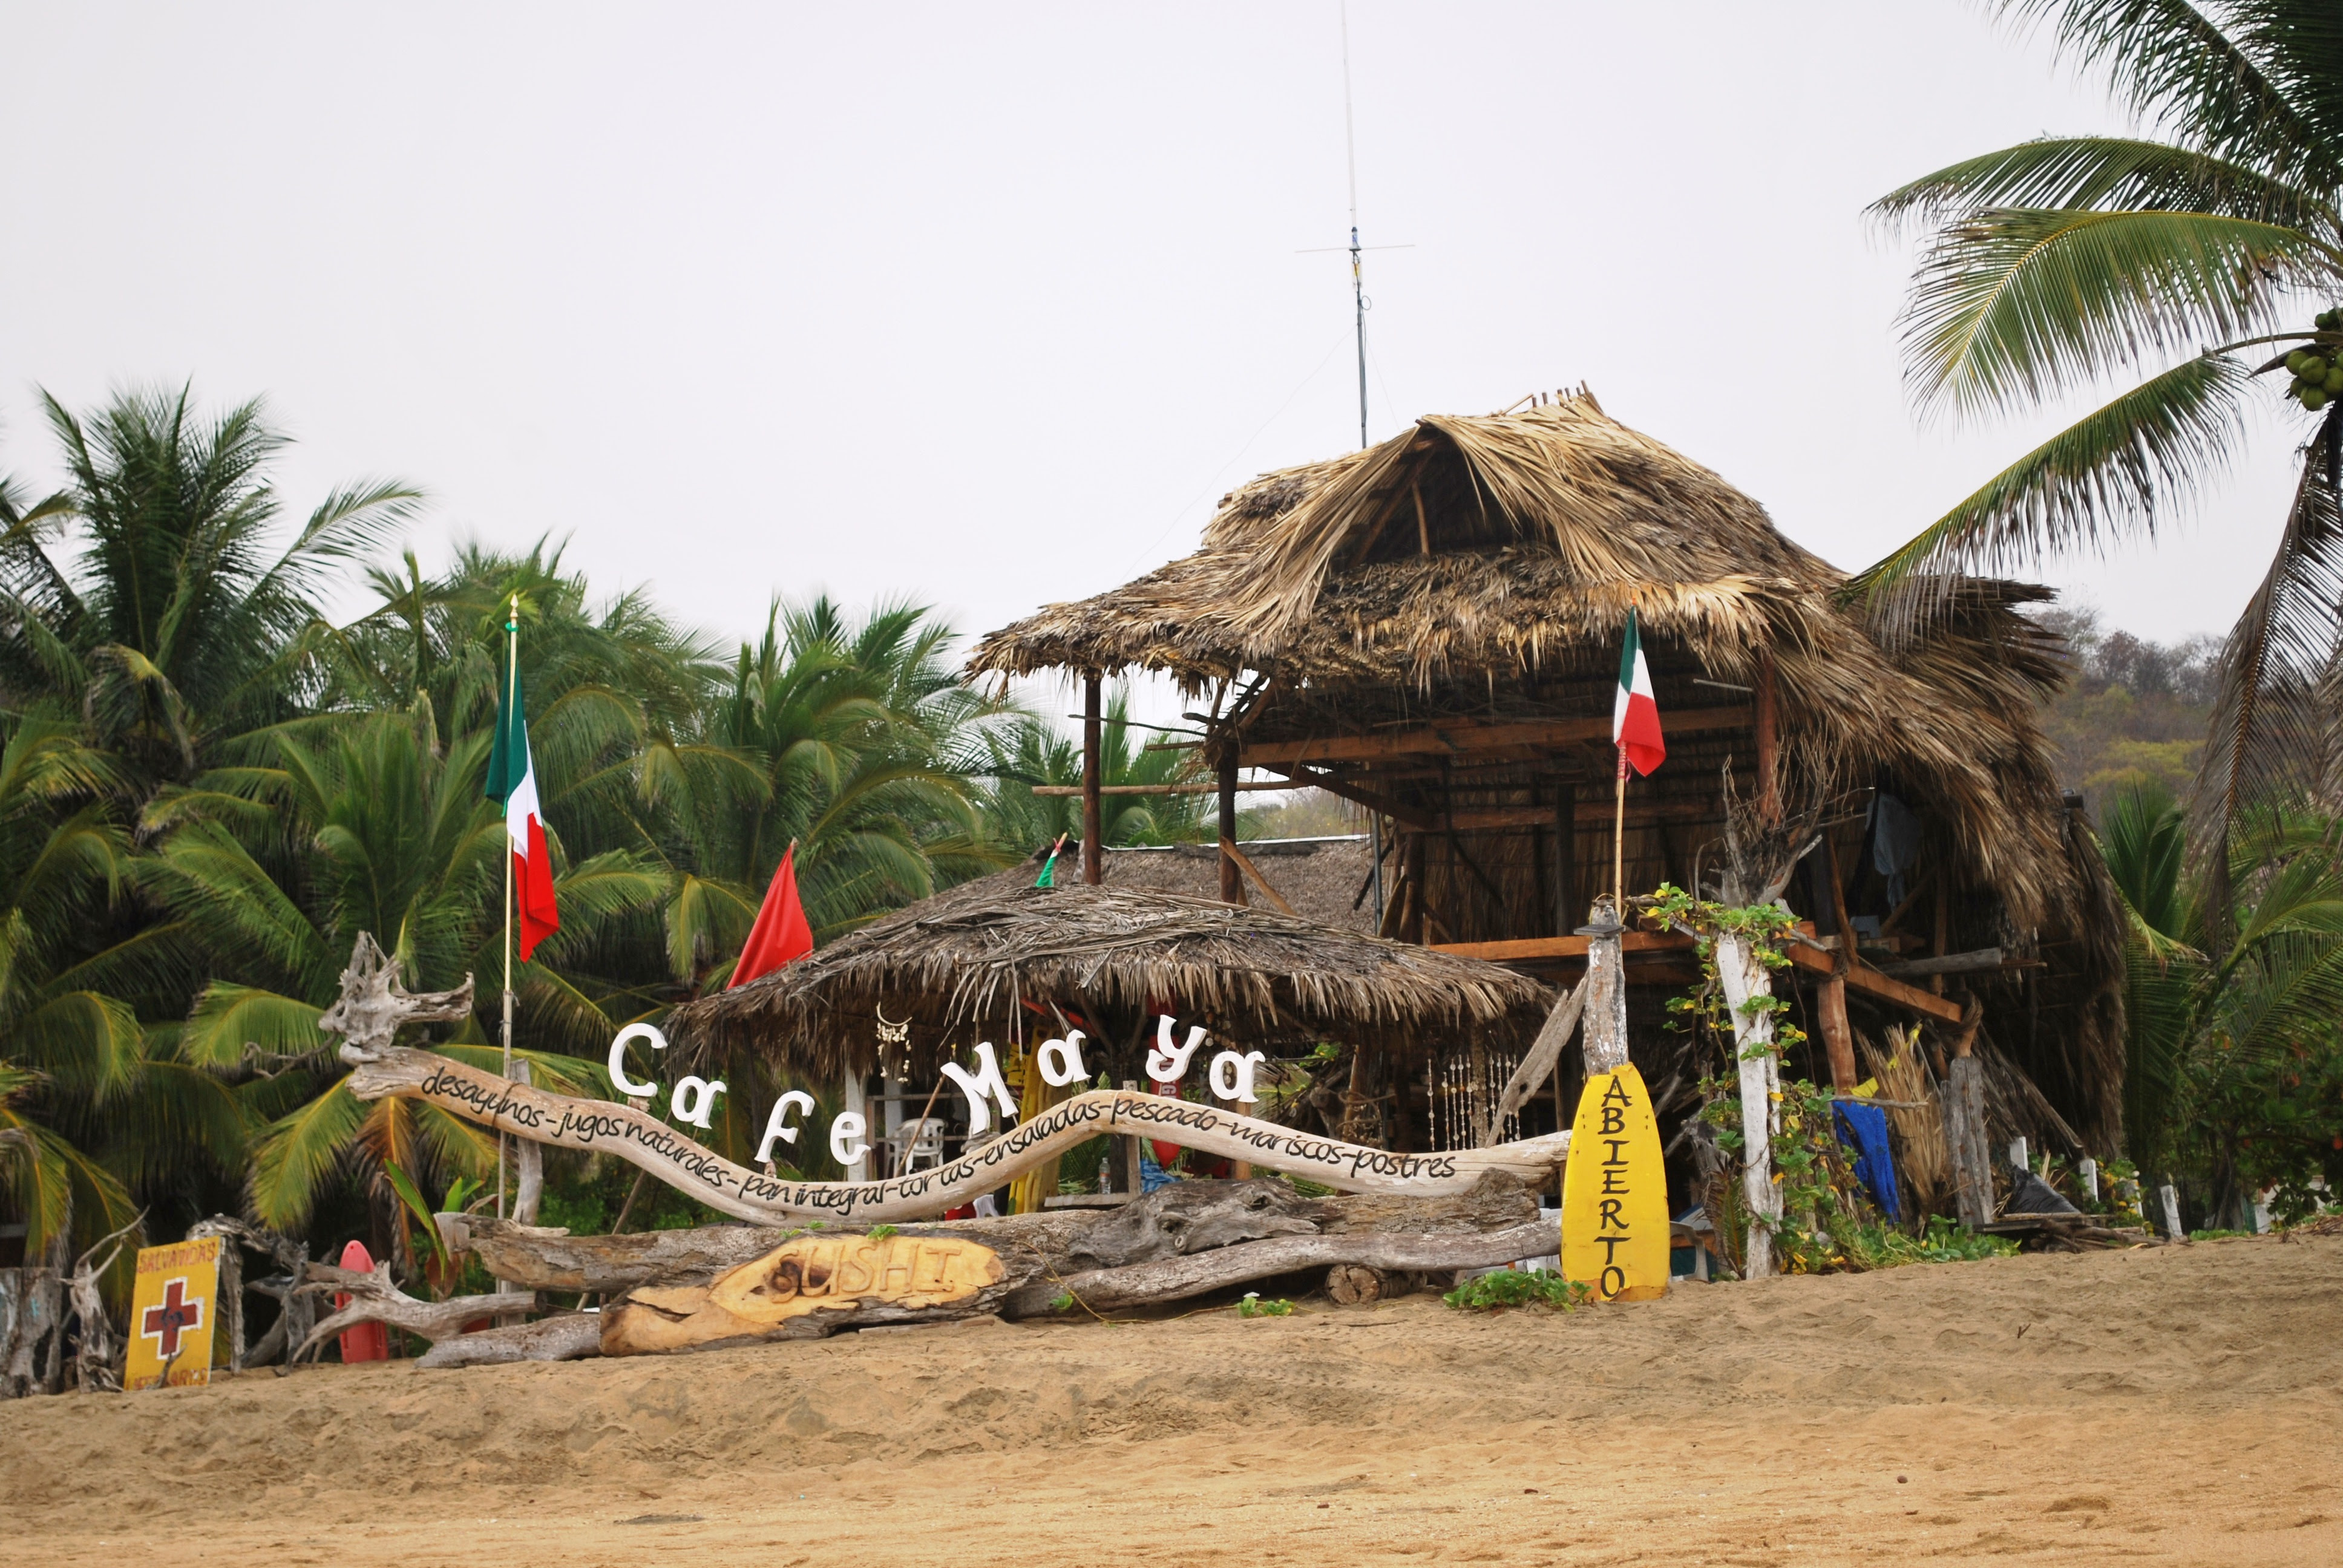 Playa Zipolite. Welcome To The Beach Of The Dead!: Finding